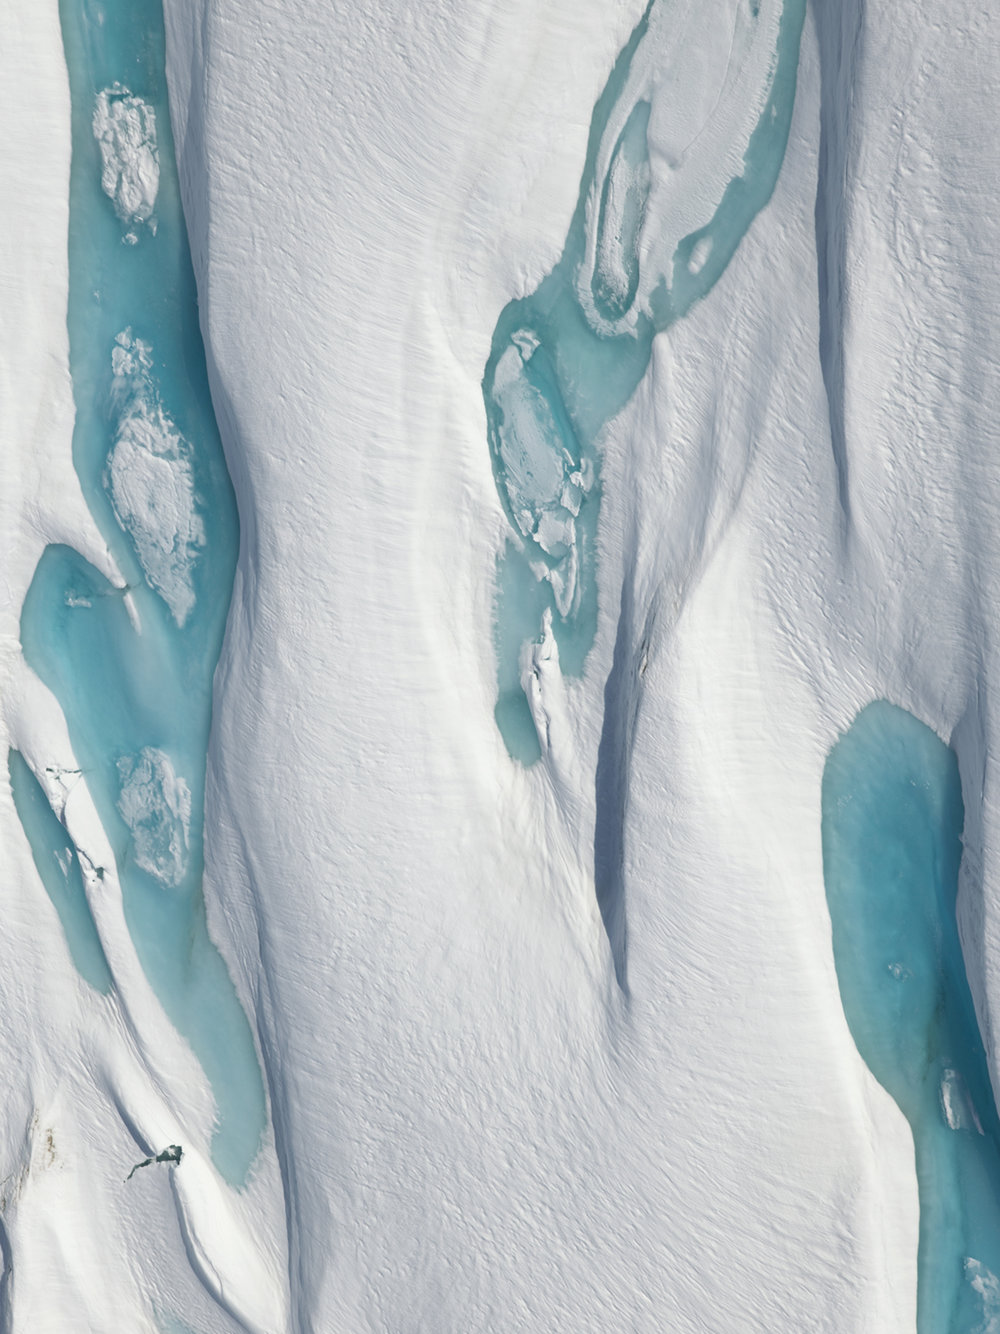 The landscape of Svalbard captured during 3 days of aerial photography.